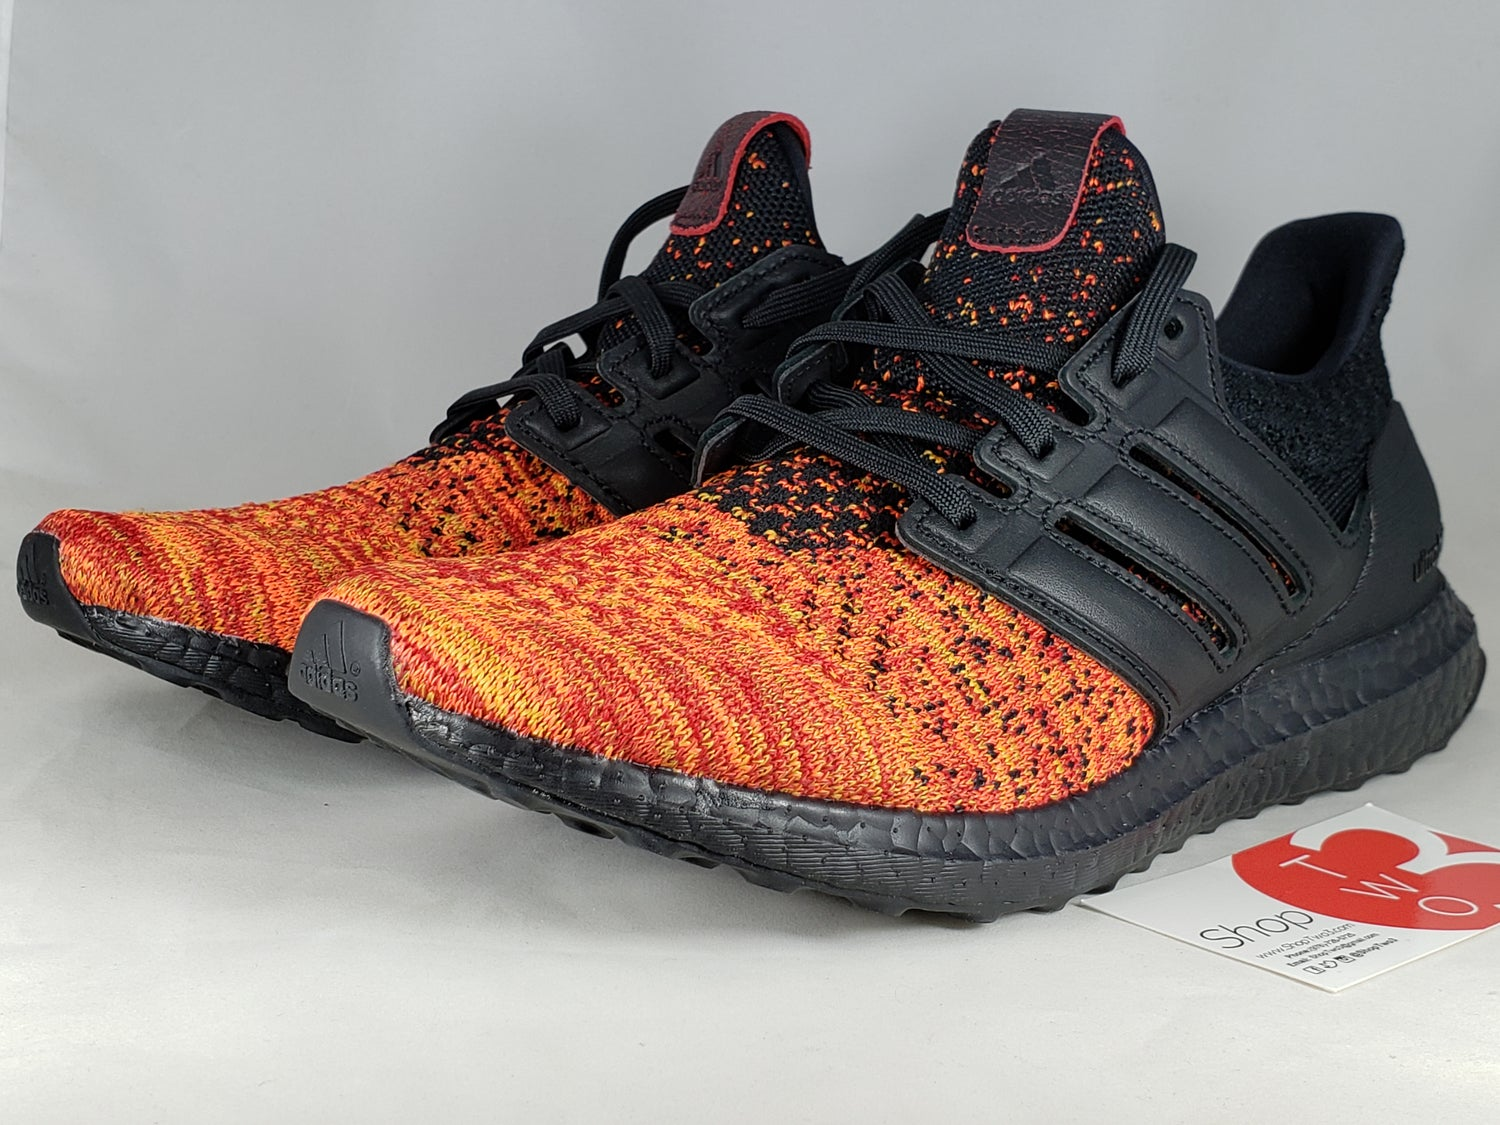 Image of Adidas Ultraboost x GOT